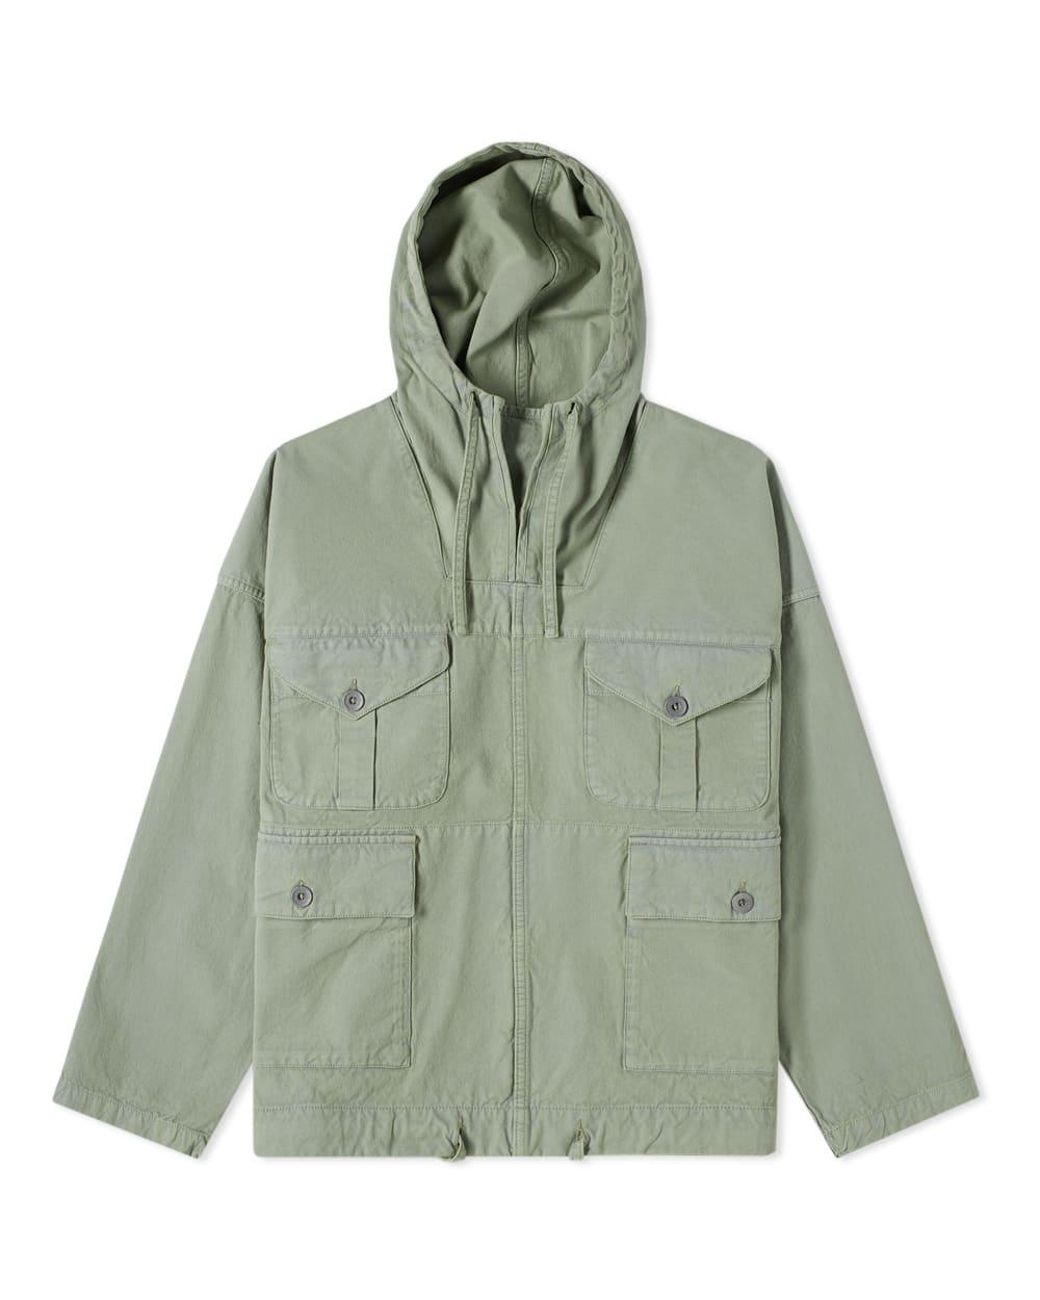 635a3b7deef5 Nigel Cabourn End. X British Army Smock in Green for Men - Lyst